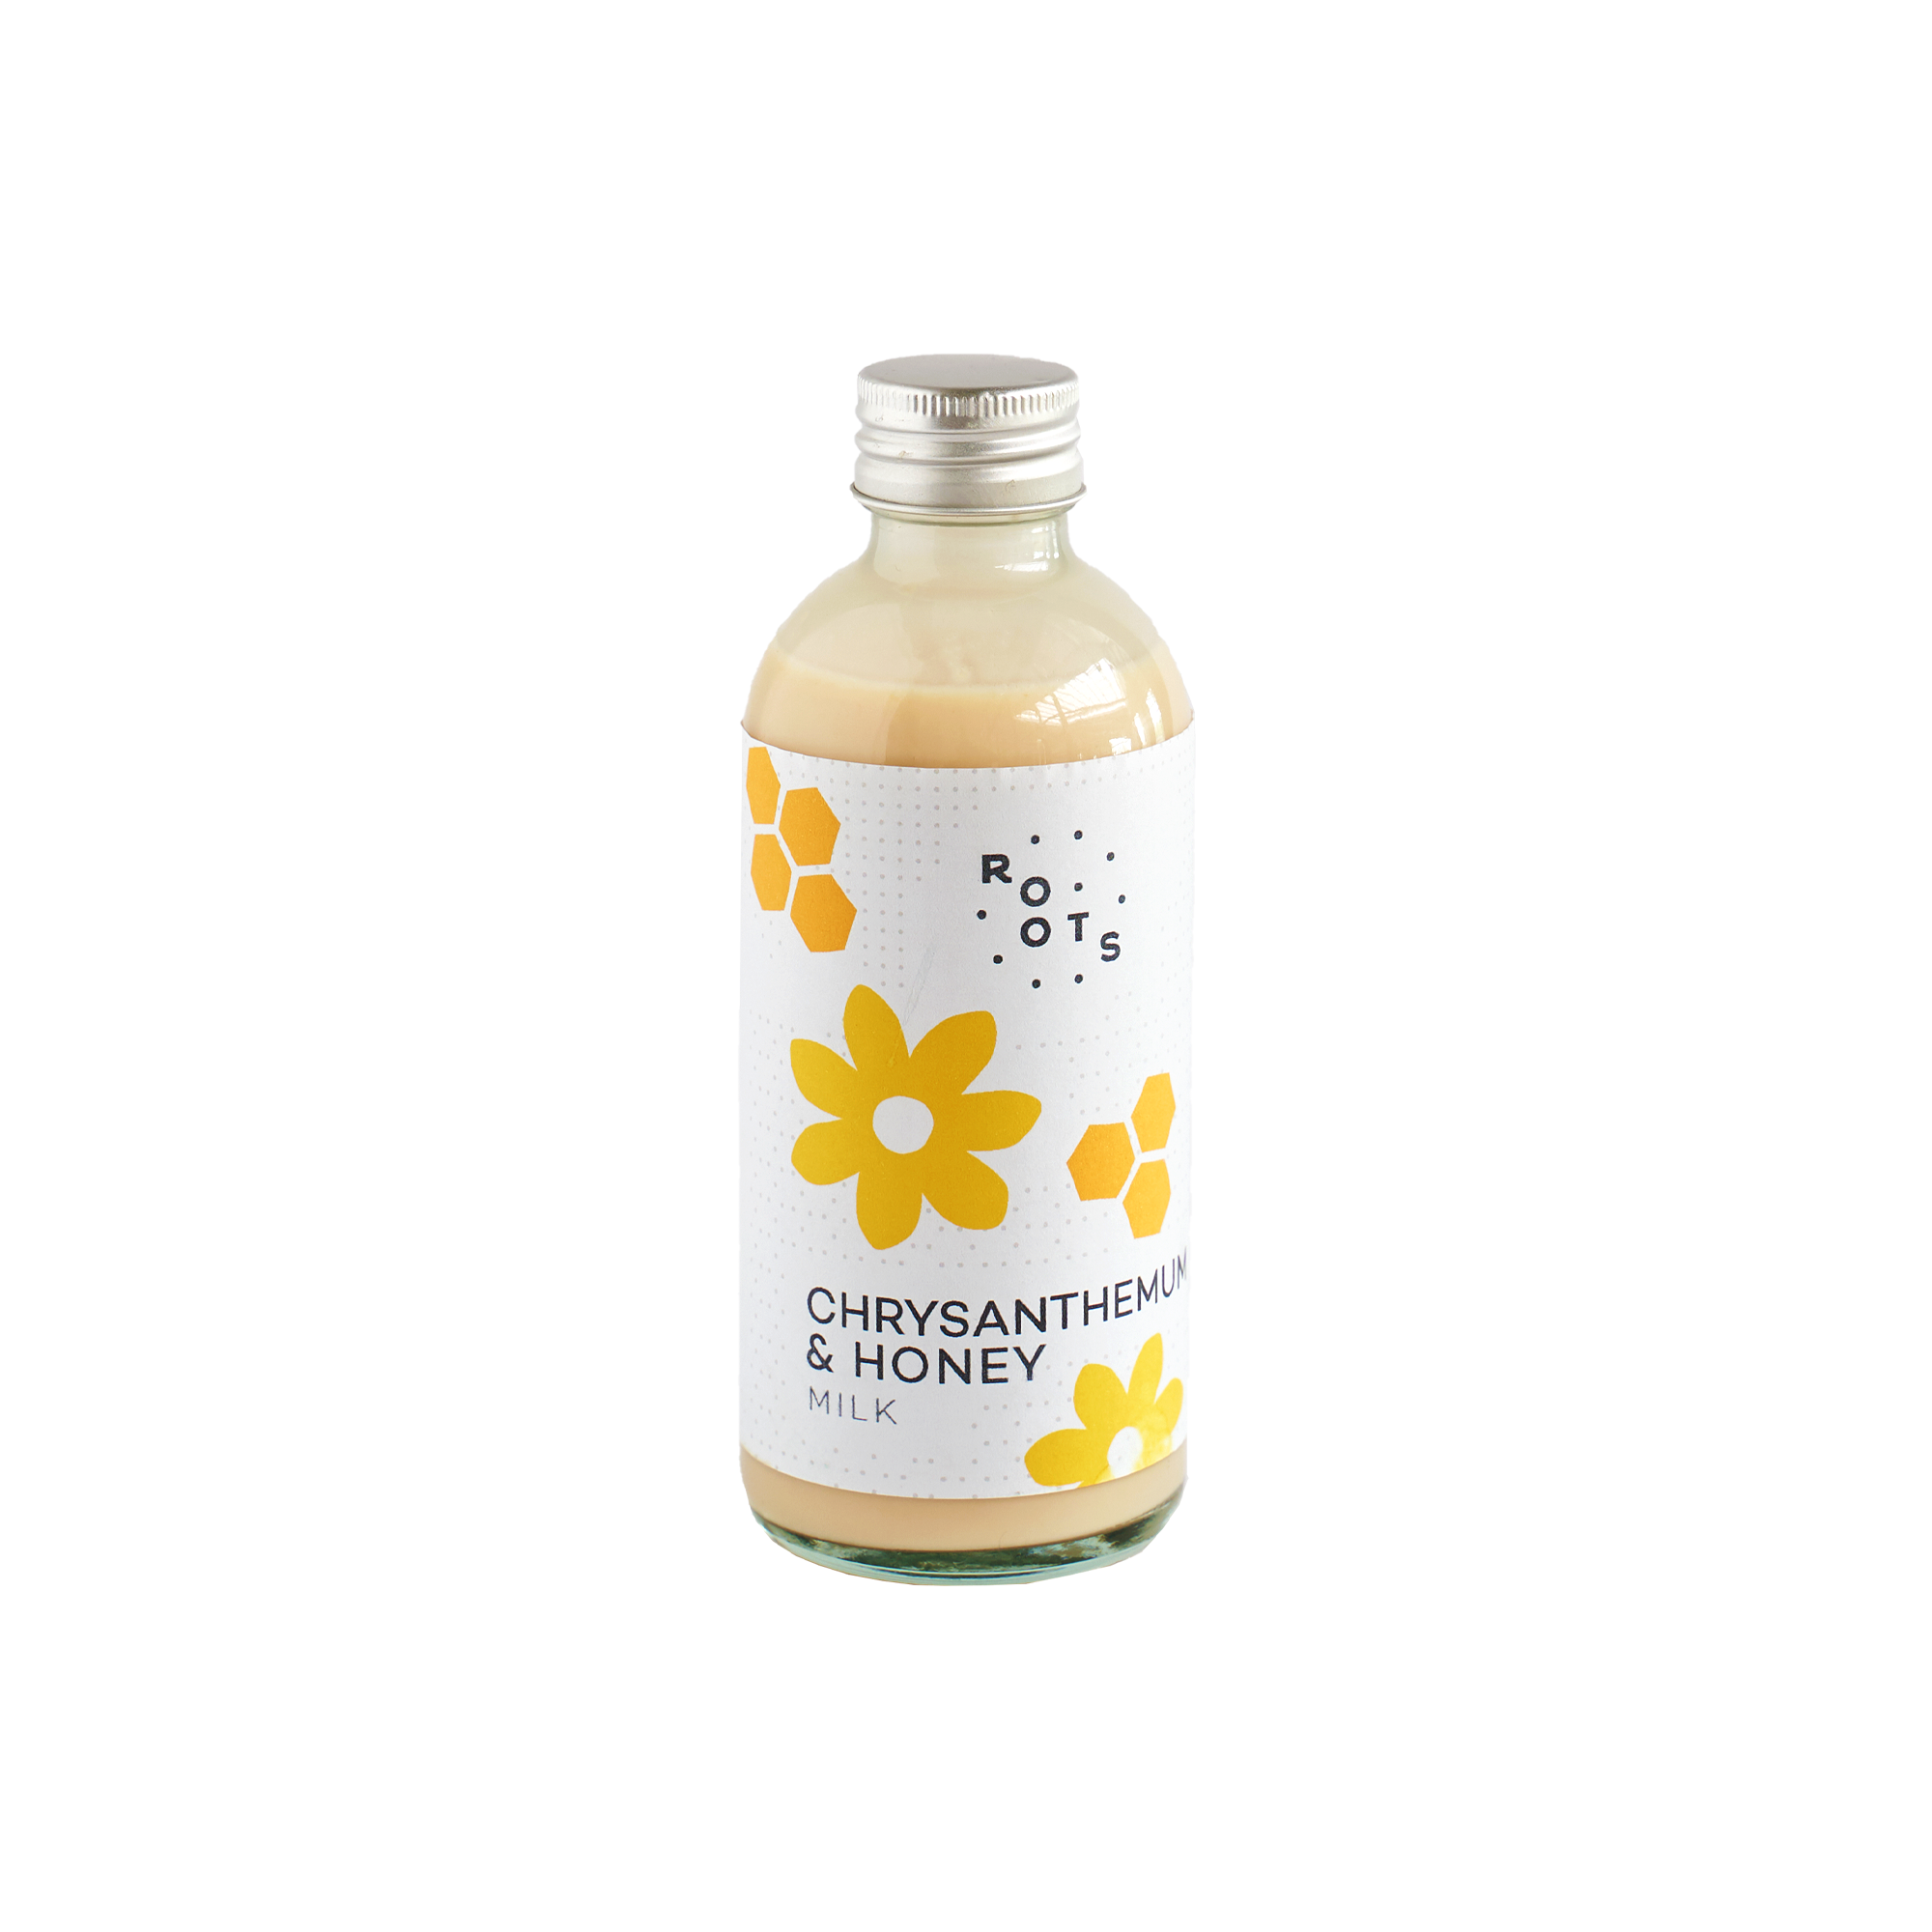 Chrysanthemum & Honey Milk